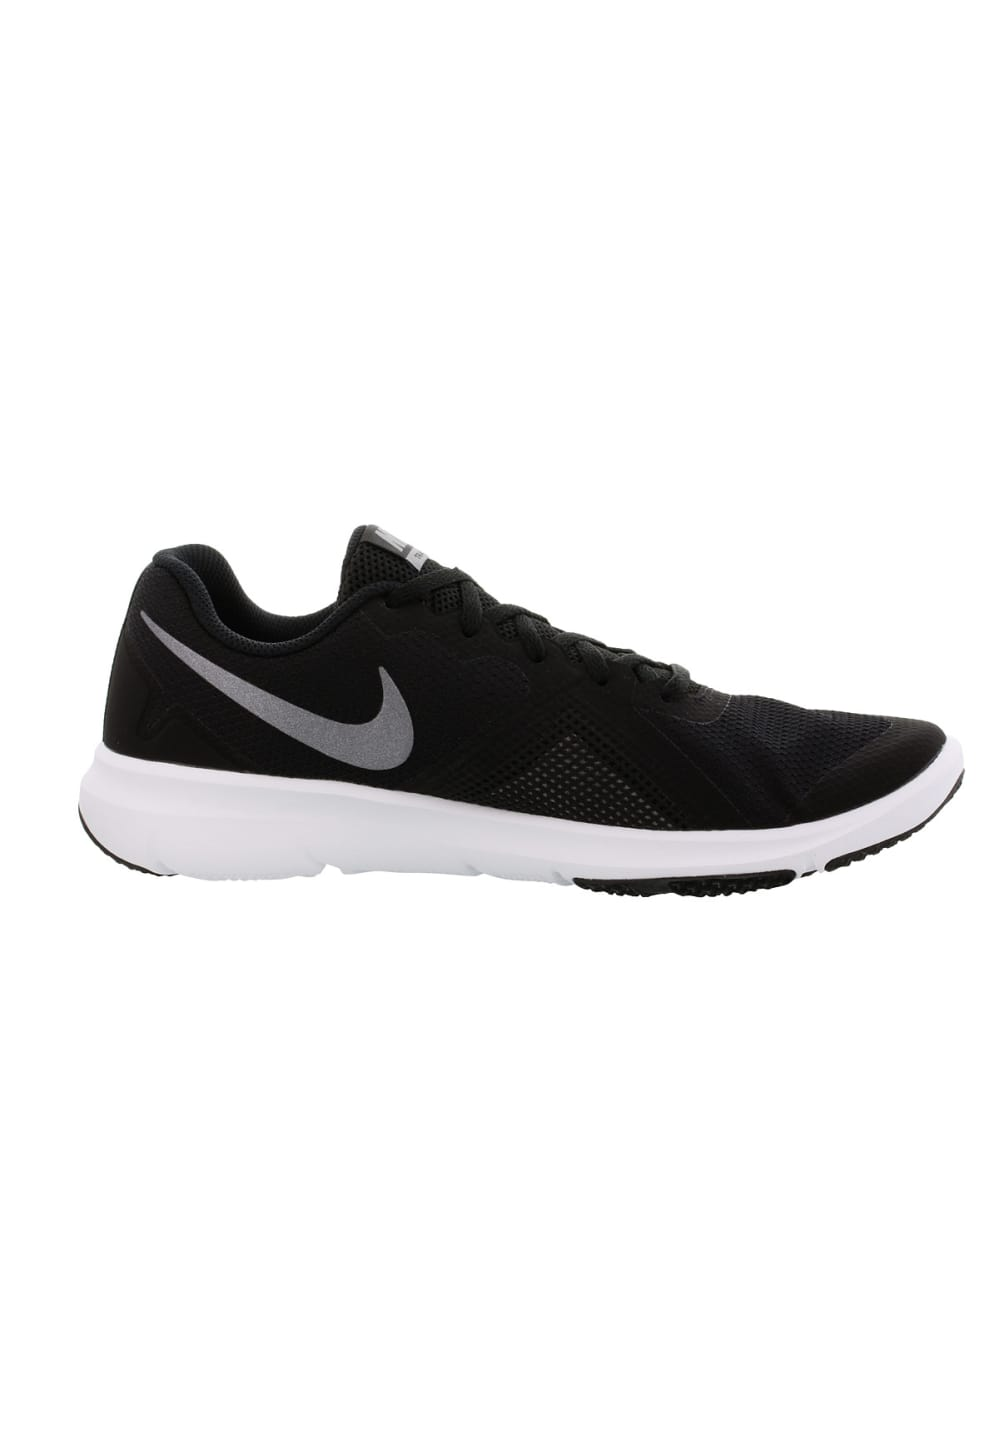 size 40 8c4ab 601a4 Next. Nike. Flex Control II - Chaussures fitness pour Homme